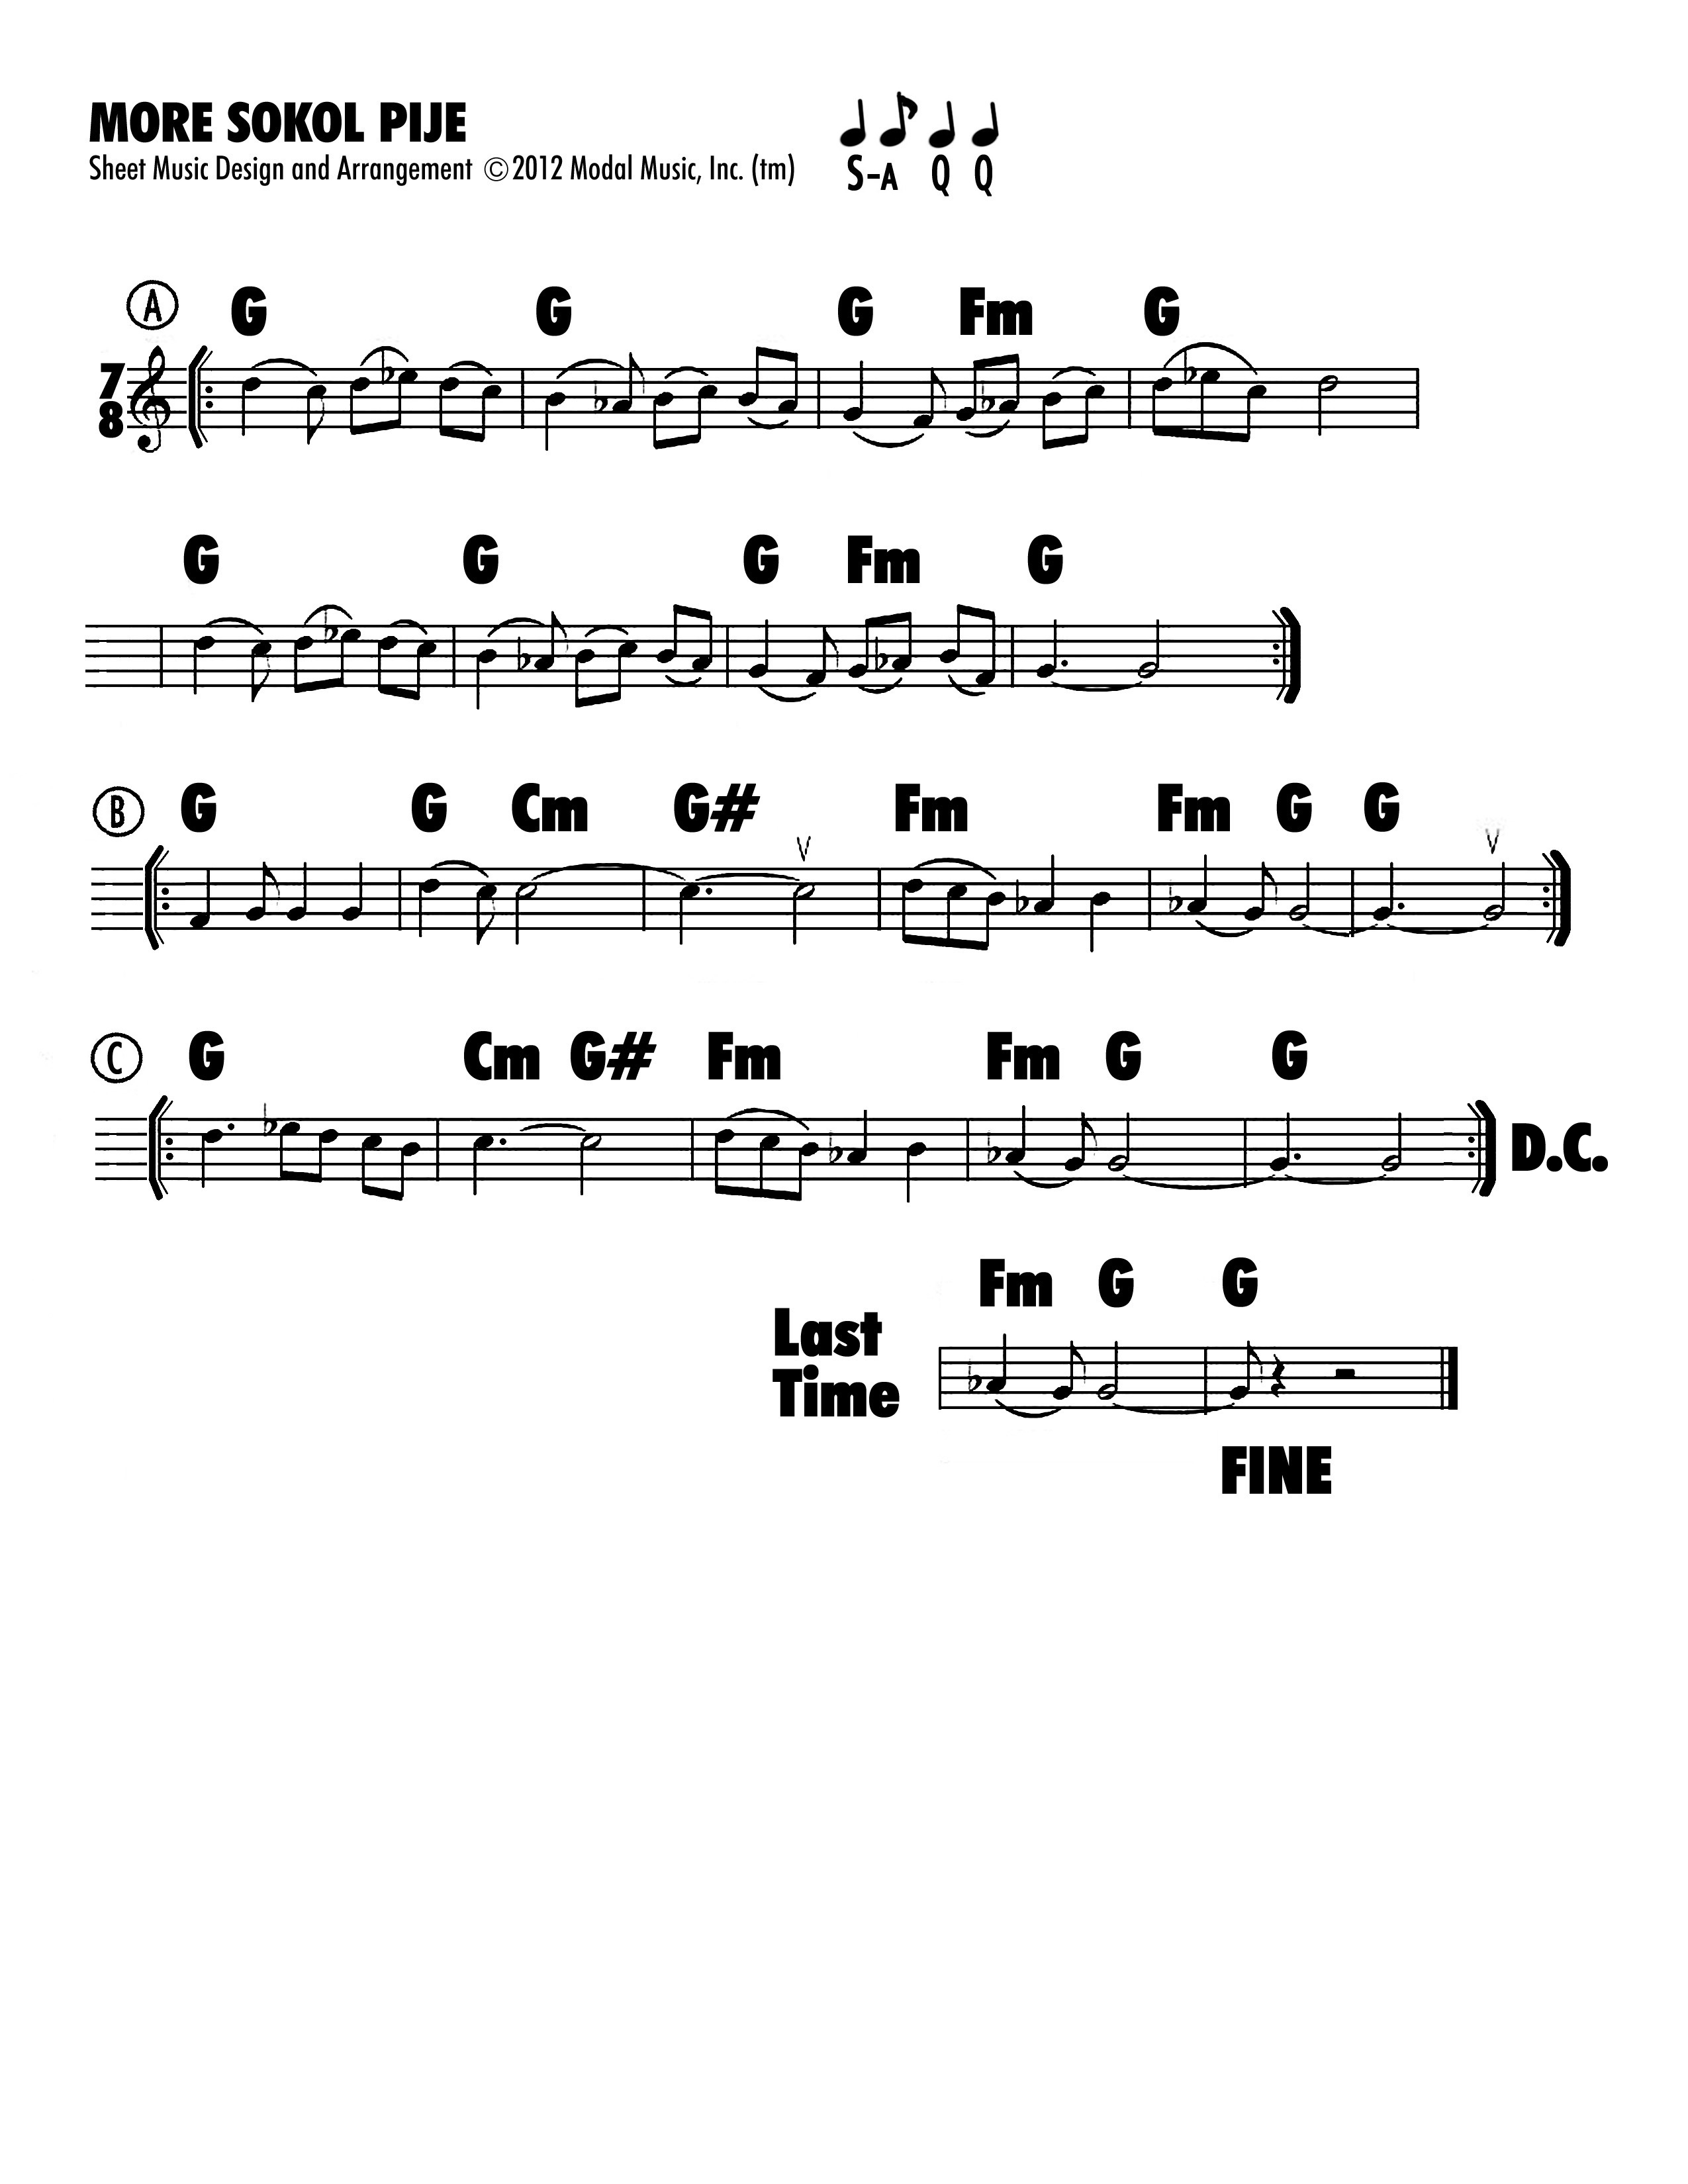 Image of sheet music of More Sokol Pije that accompanies the Jutta & the Hi-Dukes (tm) presentation at Paul Tyler's Fiddle Club. Click on link to download.